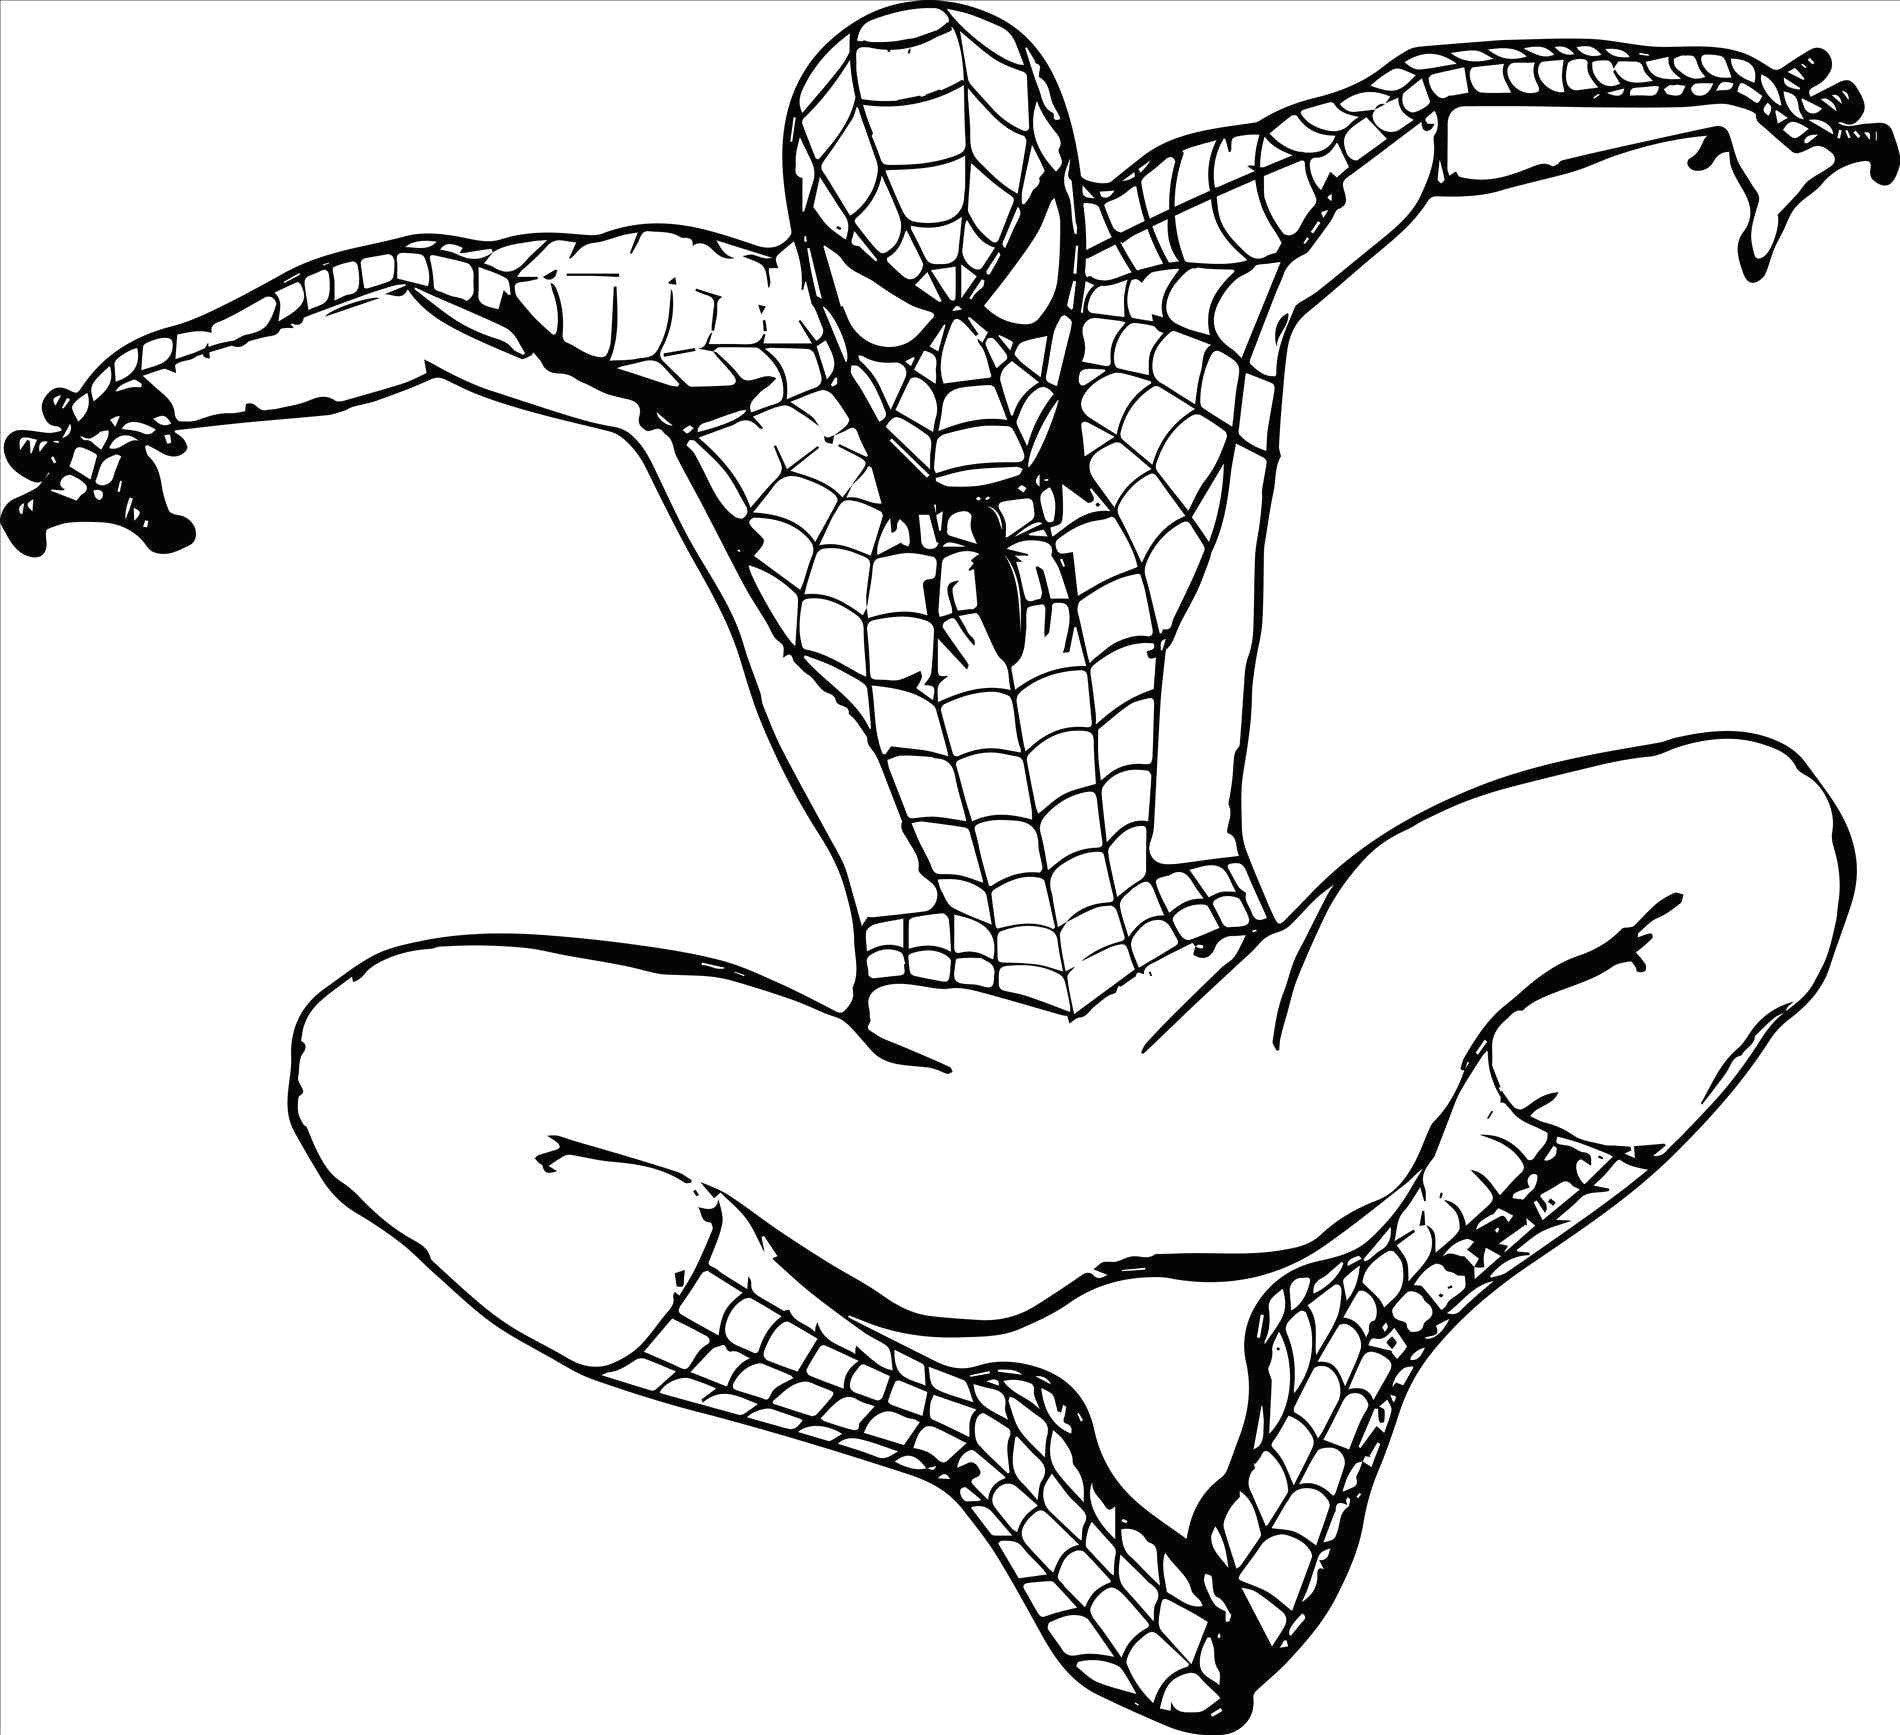 V Easy Drawing Spiderman Coloring Pages to Print Luxury Superheroes Easy to Draw